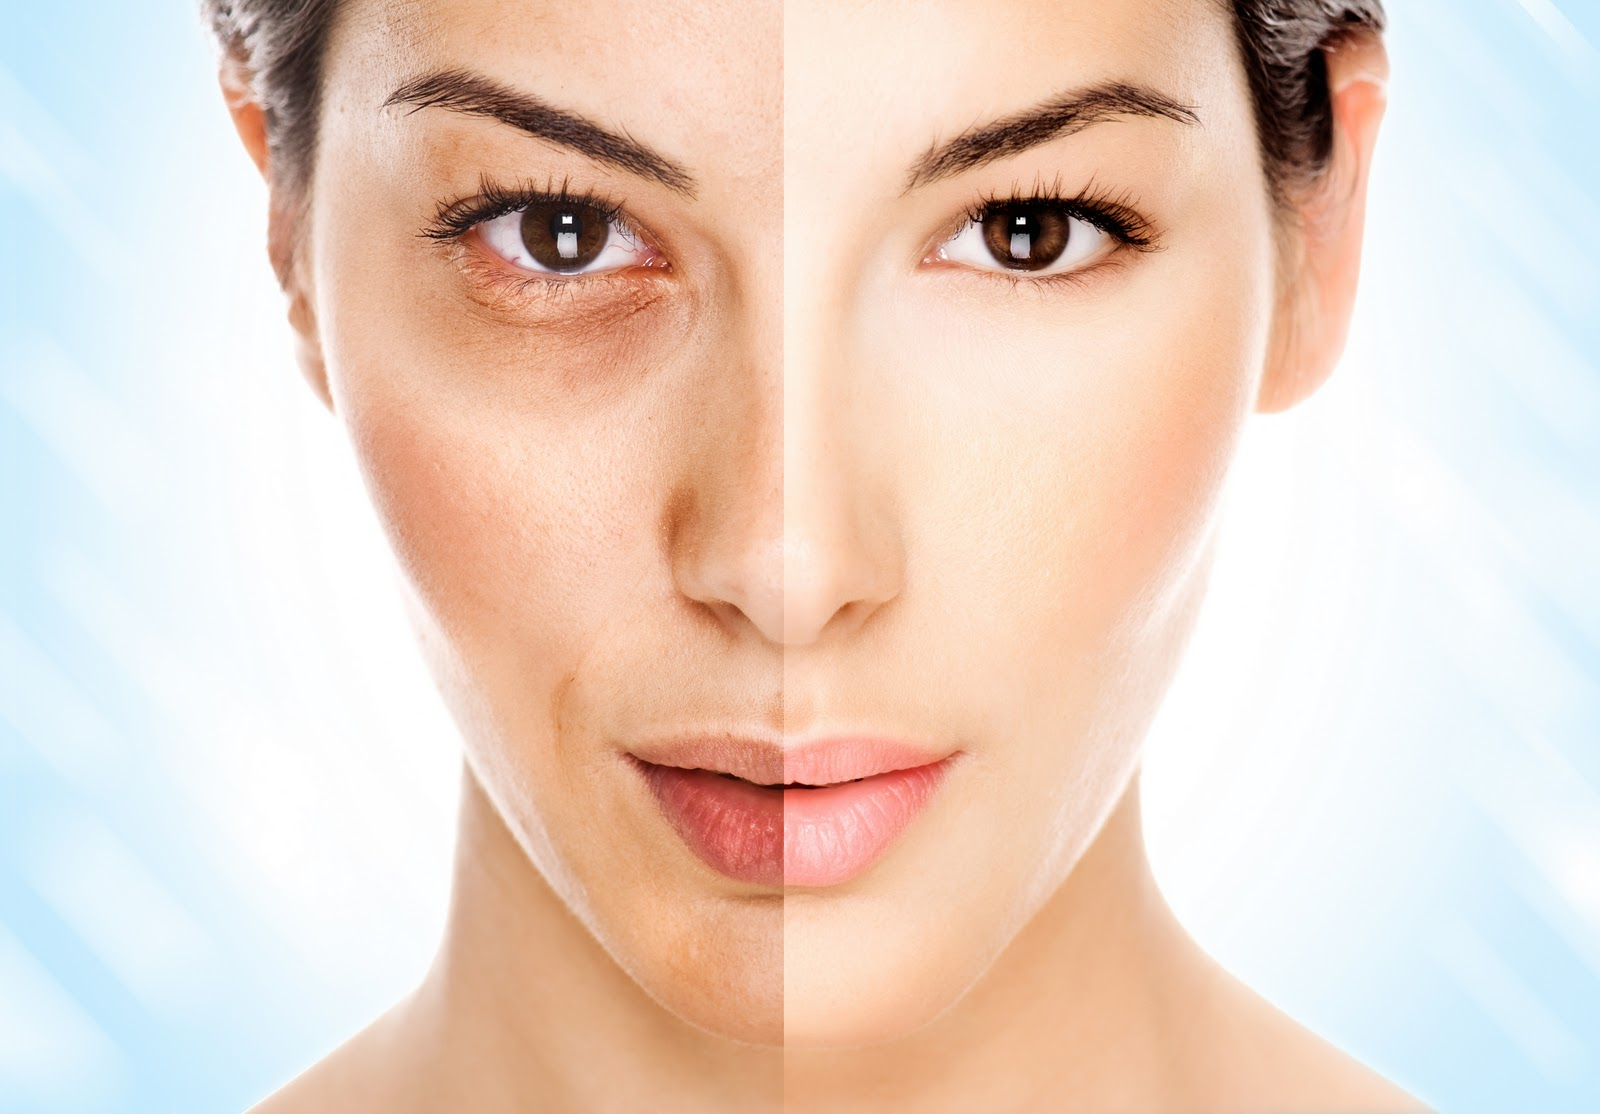 Woman with uneven skin tone on one side and clear skin on the other